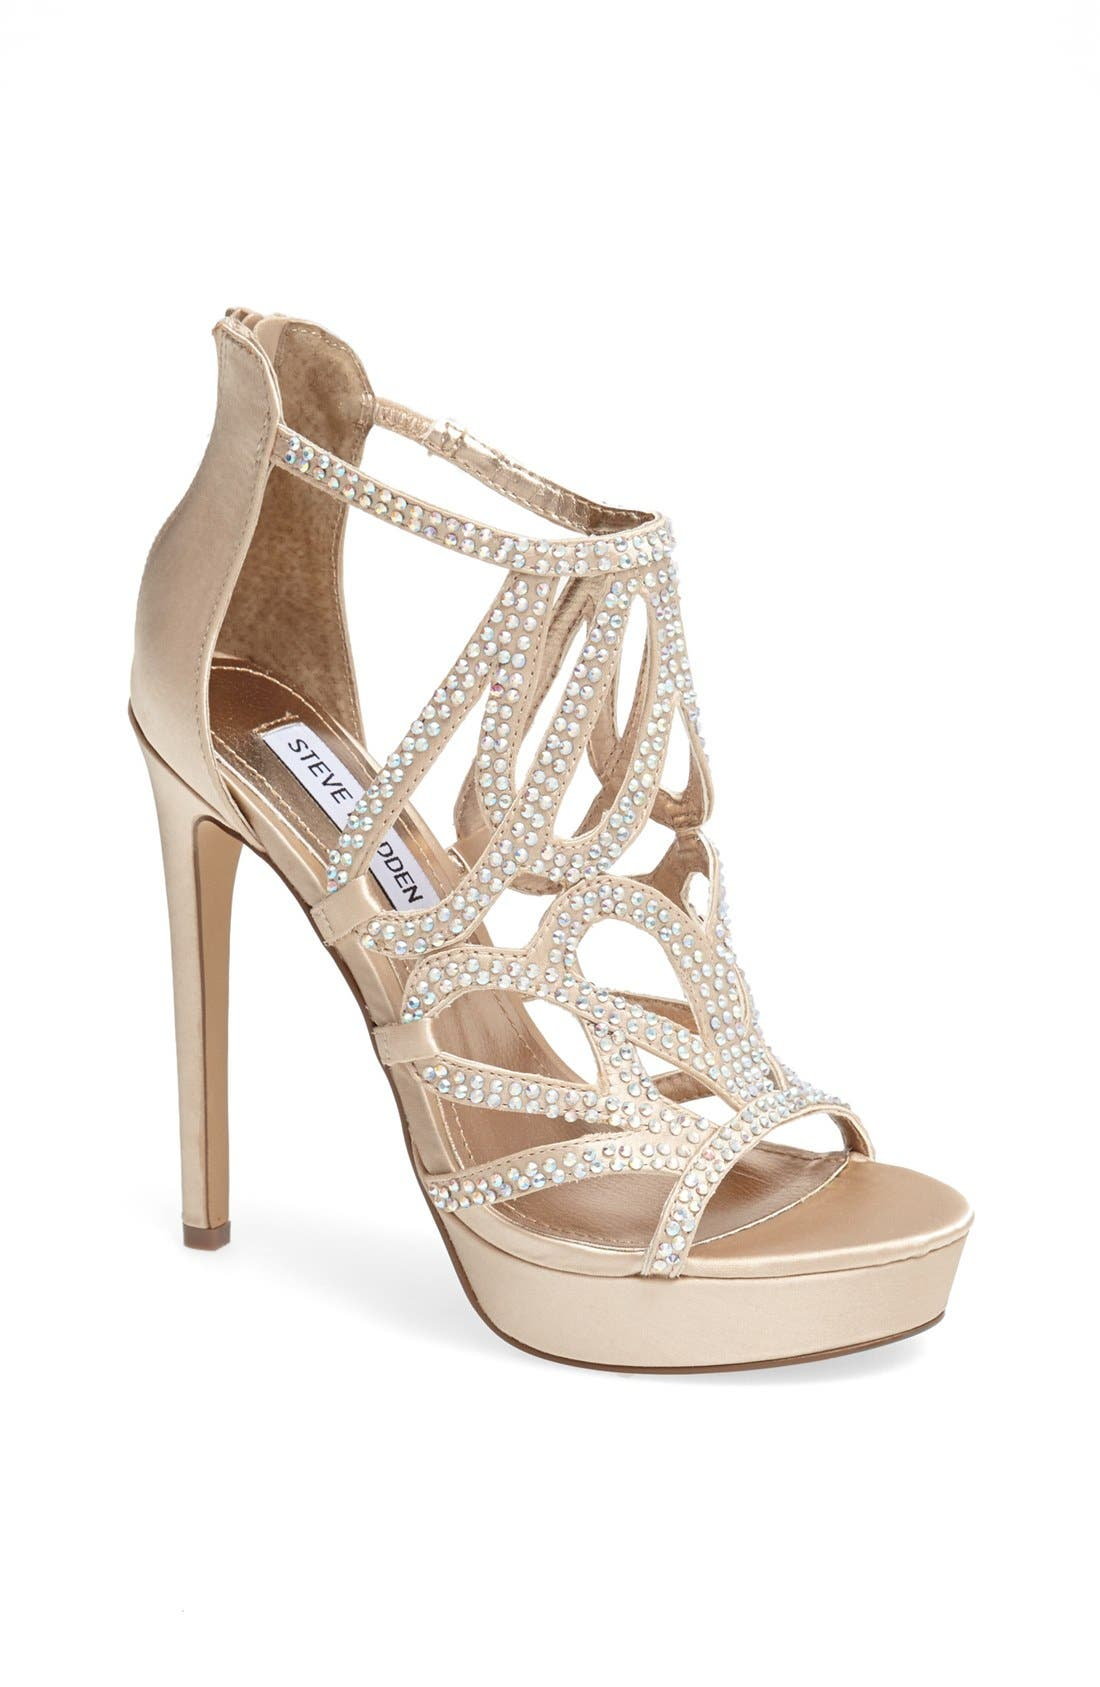 Alternate Image 1 Selected - Steve Madden 'Singer' Platform Sandal